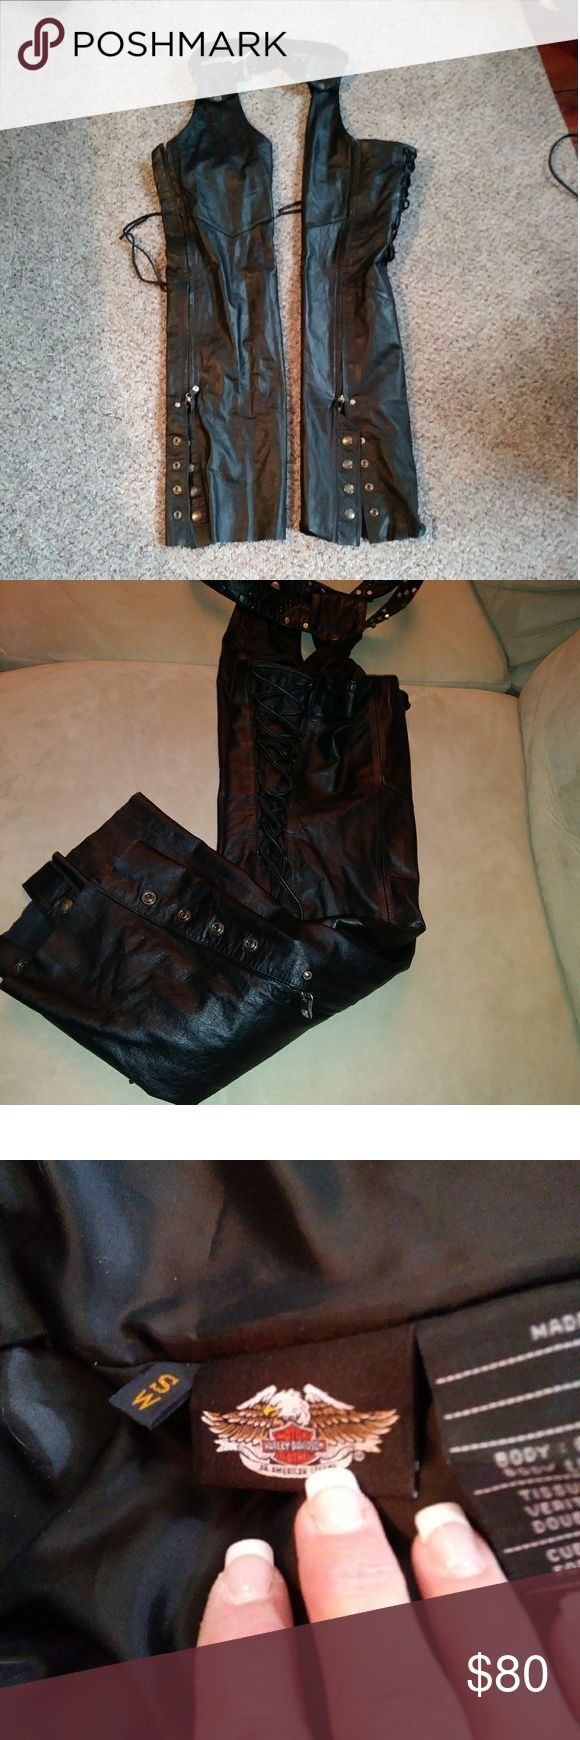 Harley Davison chaps Soft Leather Harley Davison chaps  Studded harley belt 34inches  Easy to change belt  Chaps are 39 inches from waist to boot. Excellent condition. Harley-Davidson Other